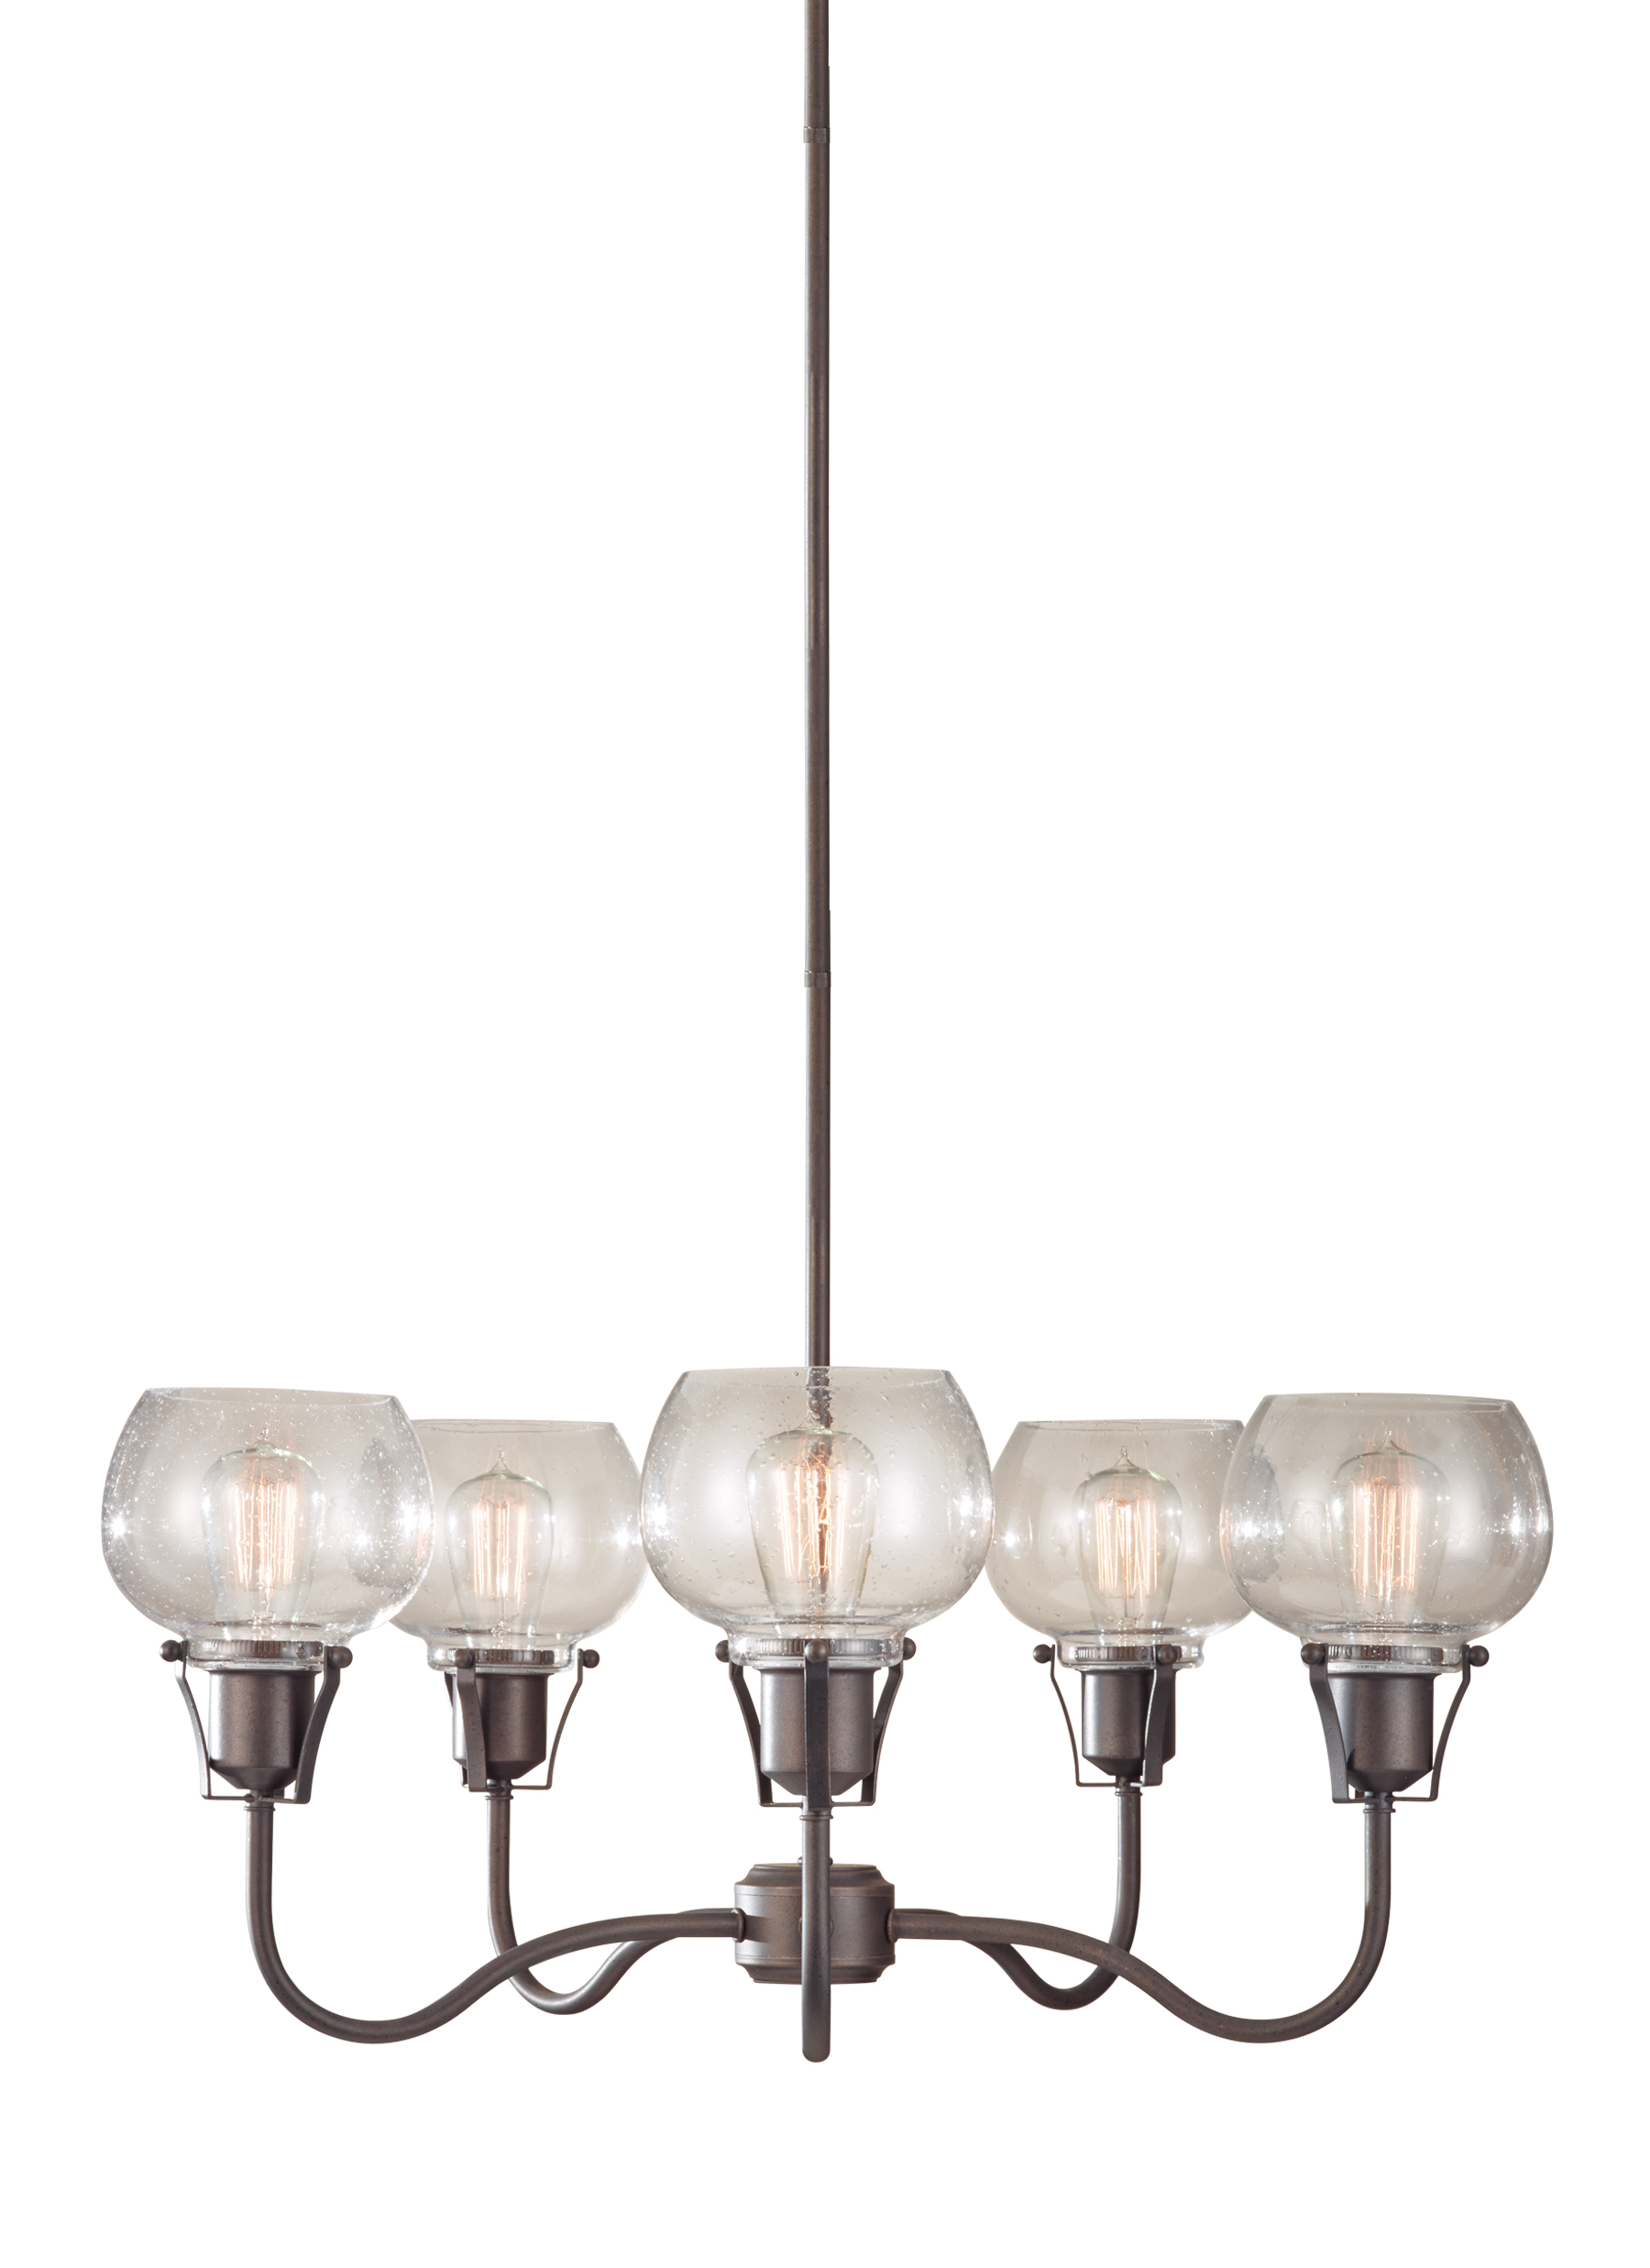 light largest chandelier chandeliers murray bathroom collections fabulous fans lantern fs burnished bronze most floor wall lighting bulb lamps feiss wireless ceiling with trough tube fan outdoor pendant fixtures